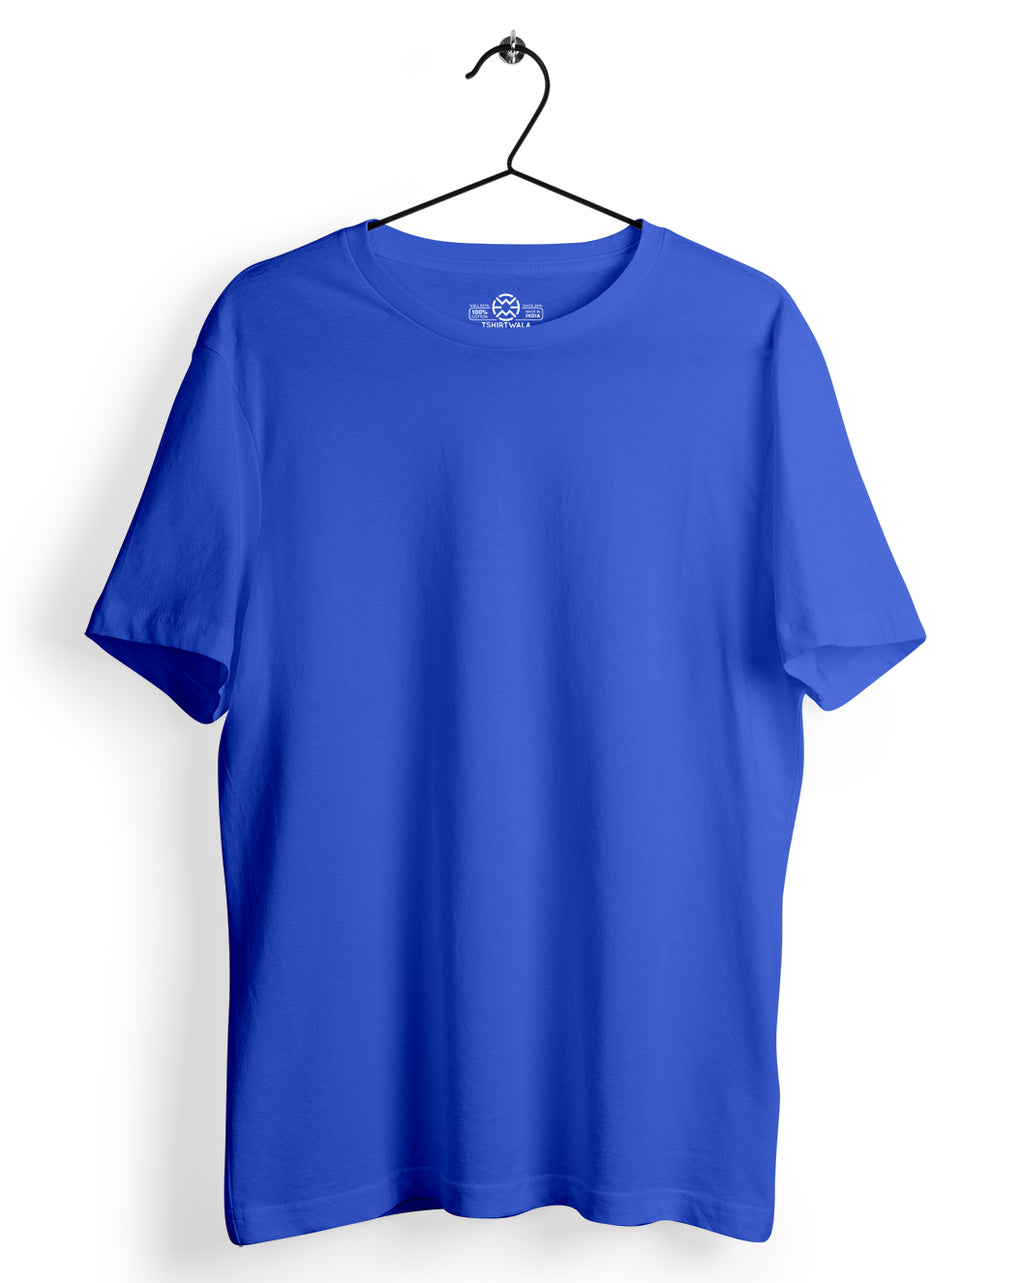 Basic Royal Blue Round Neck Tshirt